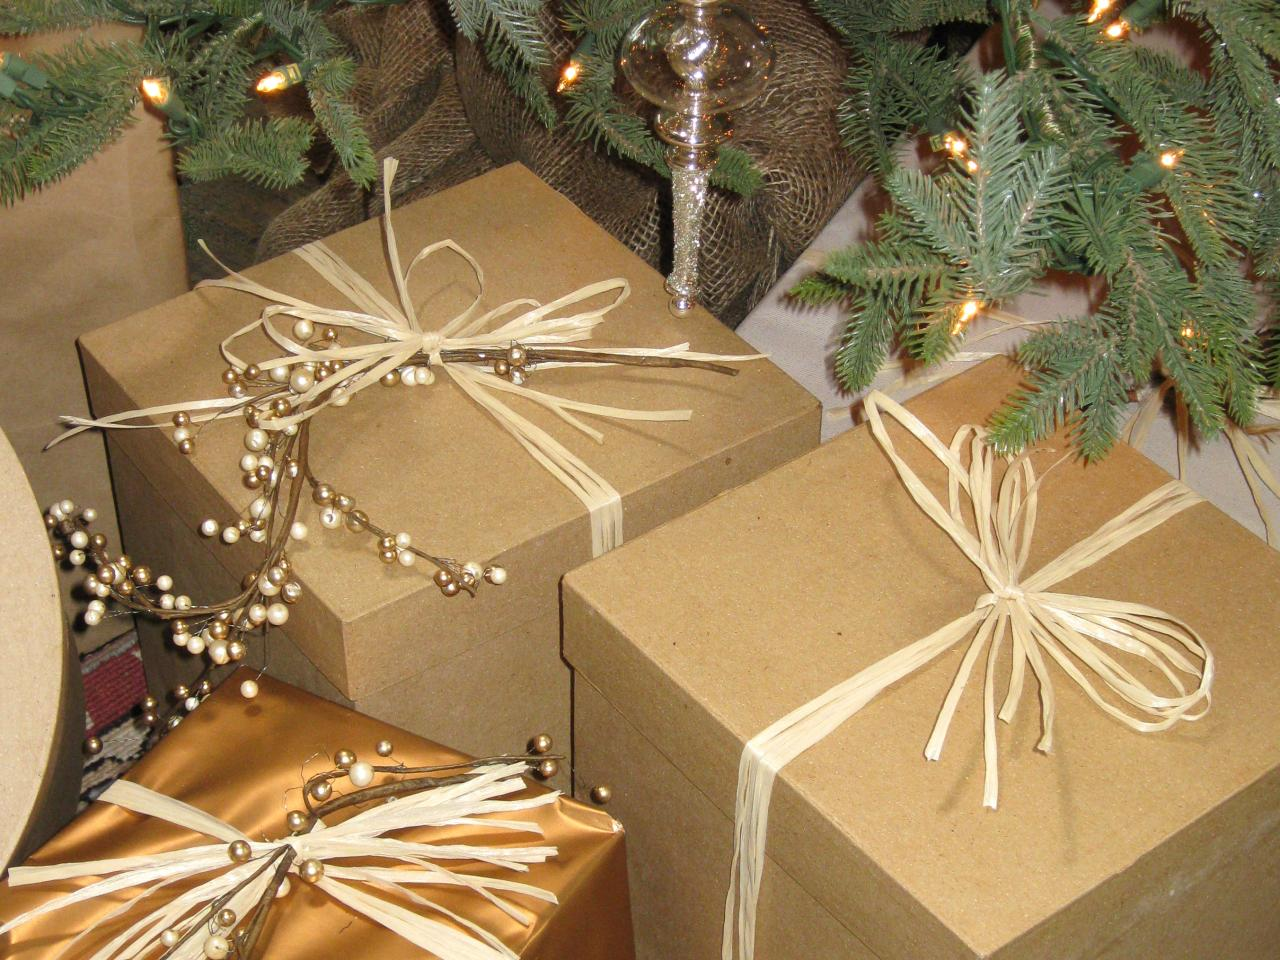 Gift wrapping ideas for a country holiday theme hgtv Country christmas gifts to make